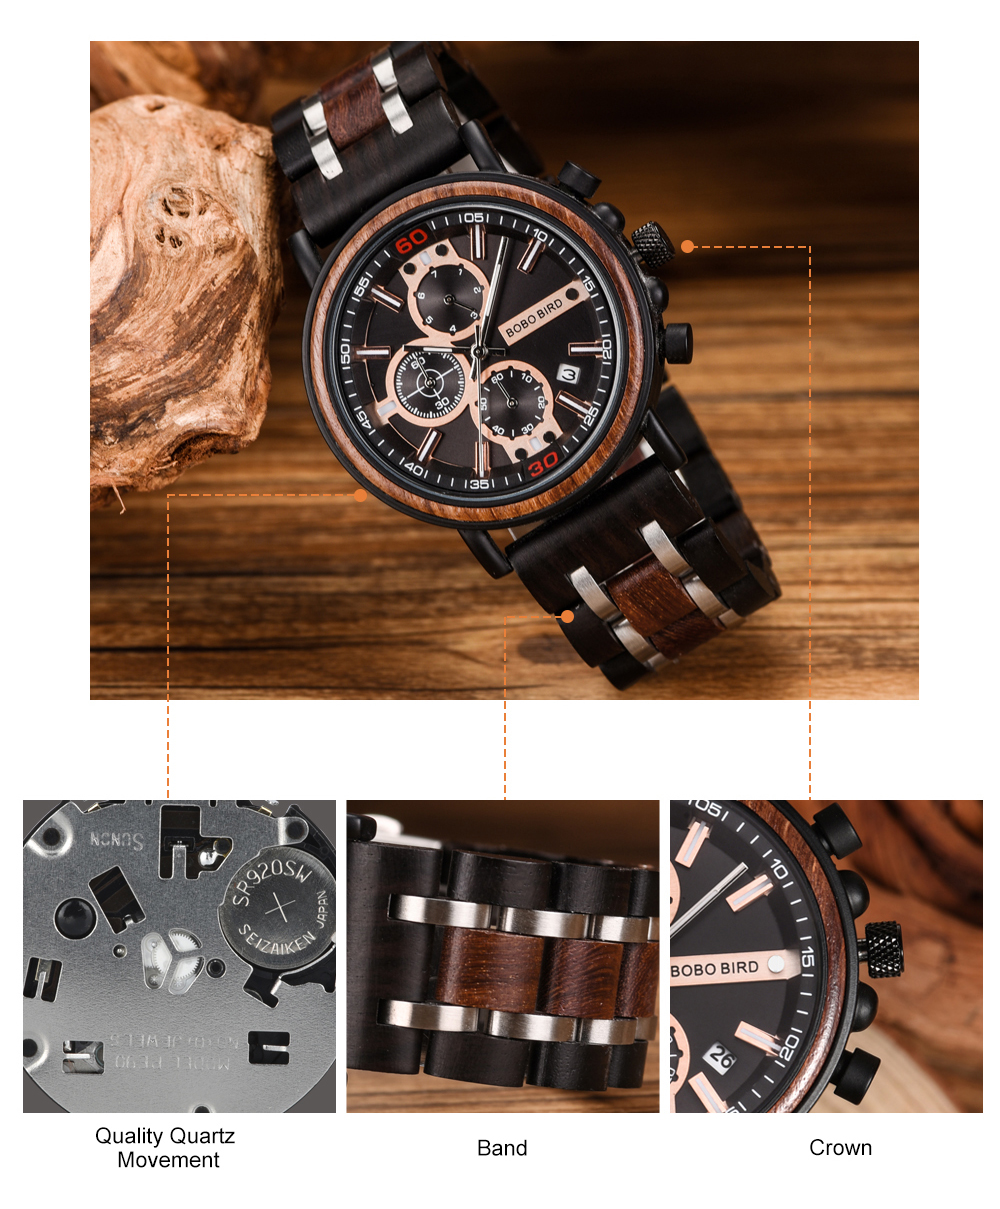 BOBO BIRD Personalized Wooden Watch Men Relogio Masculino Top Brand Luxury Chronograph Military Watches Anniversary Gift for Him H7da4b3f72ed8435a8518f3315ddb0a404